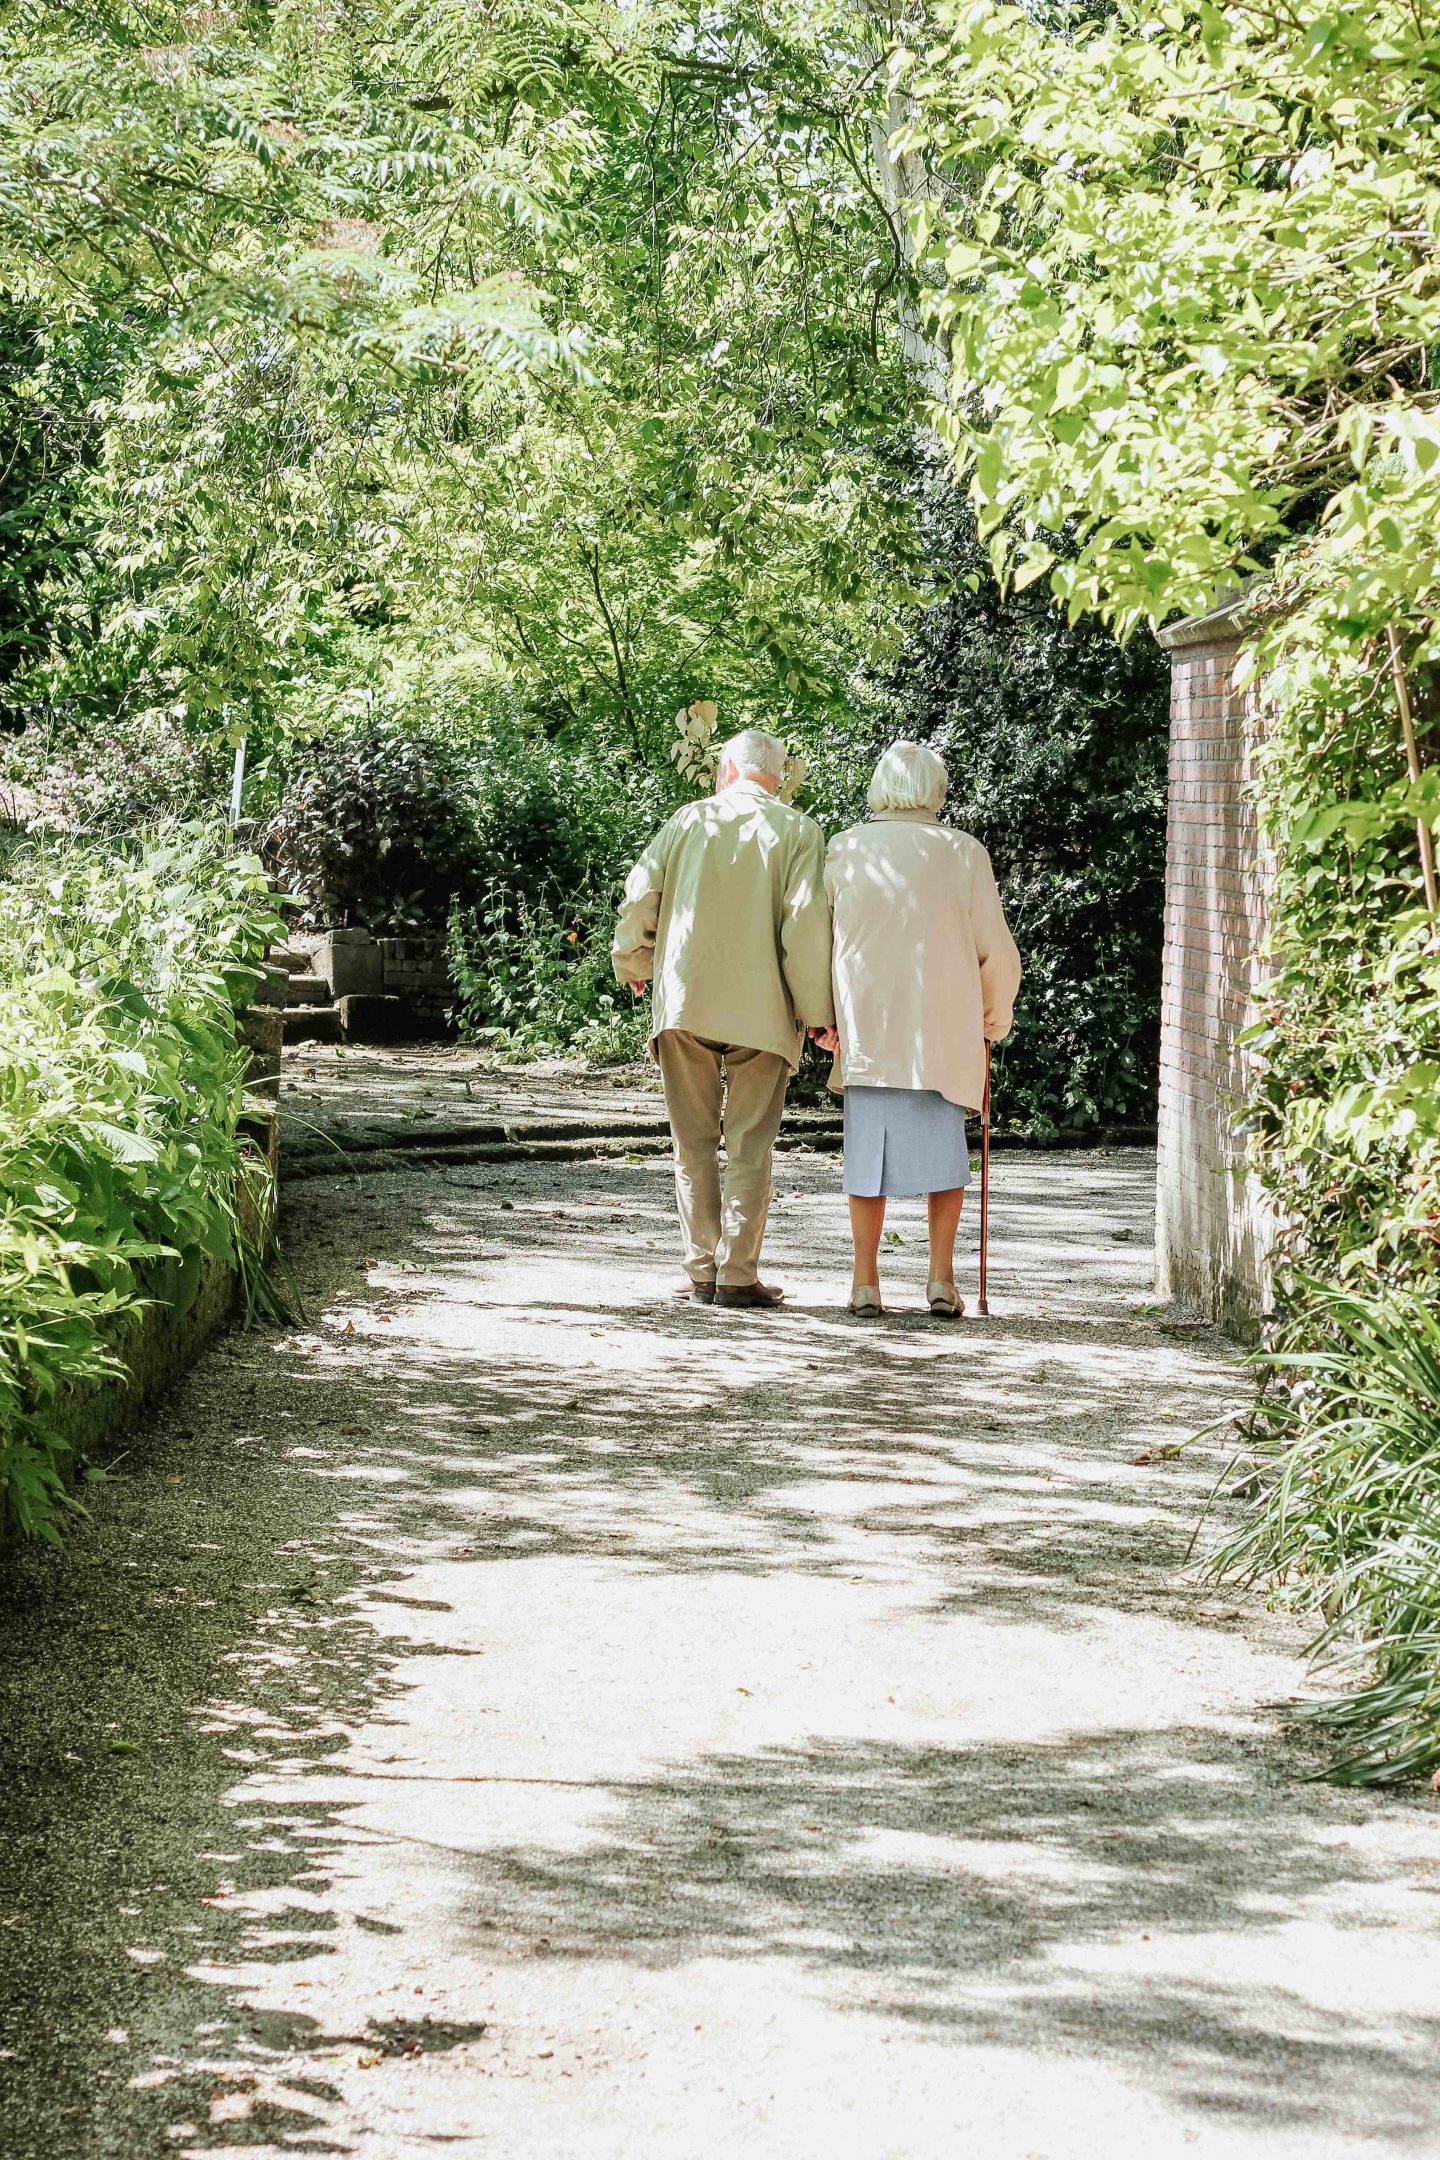 elderly couple walking in the neighborhood